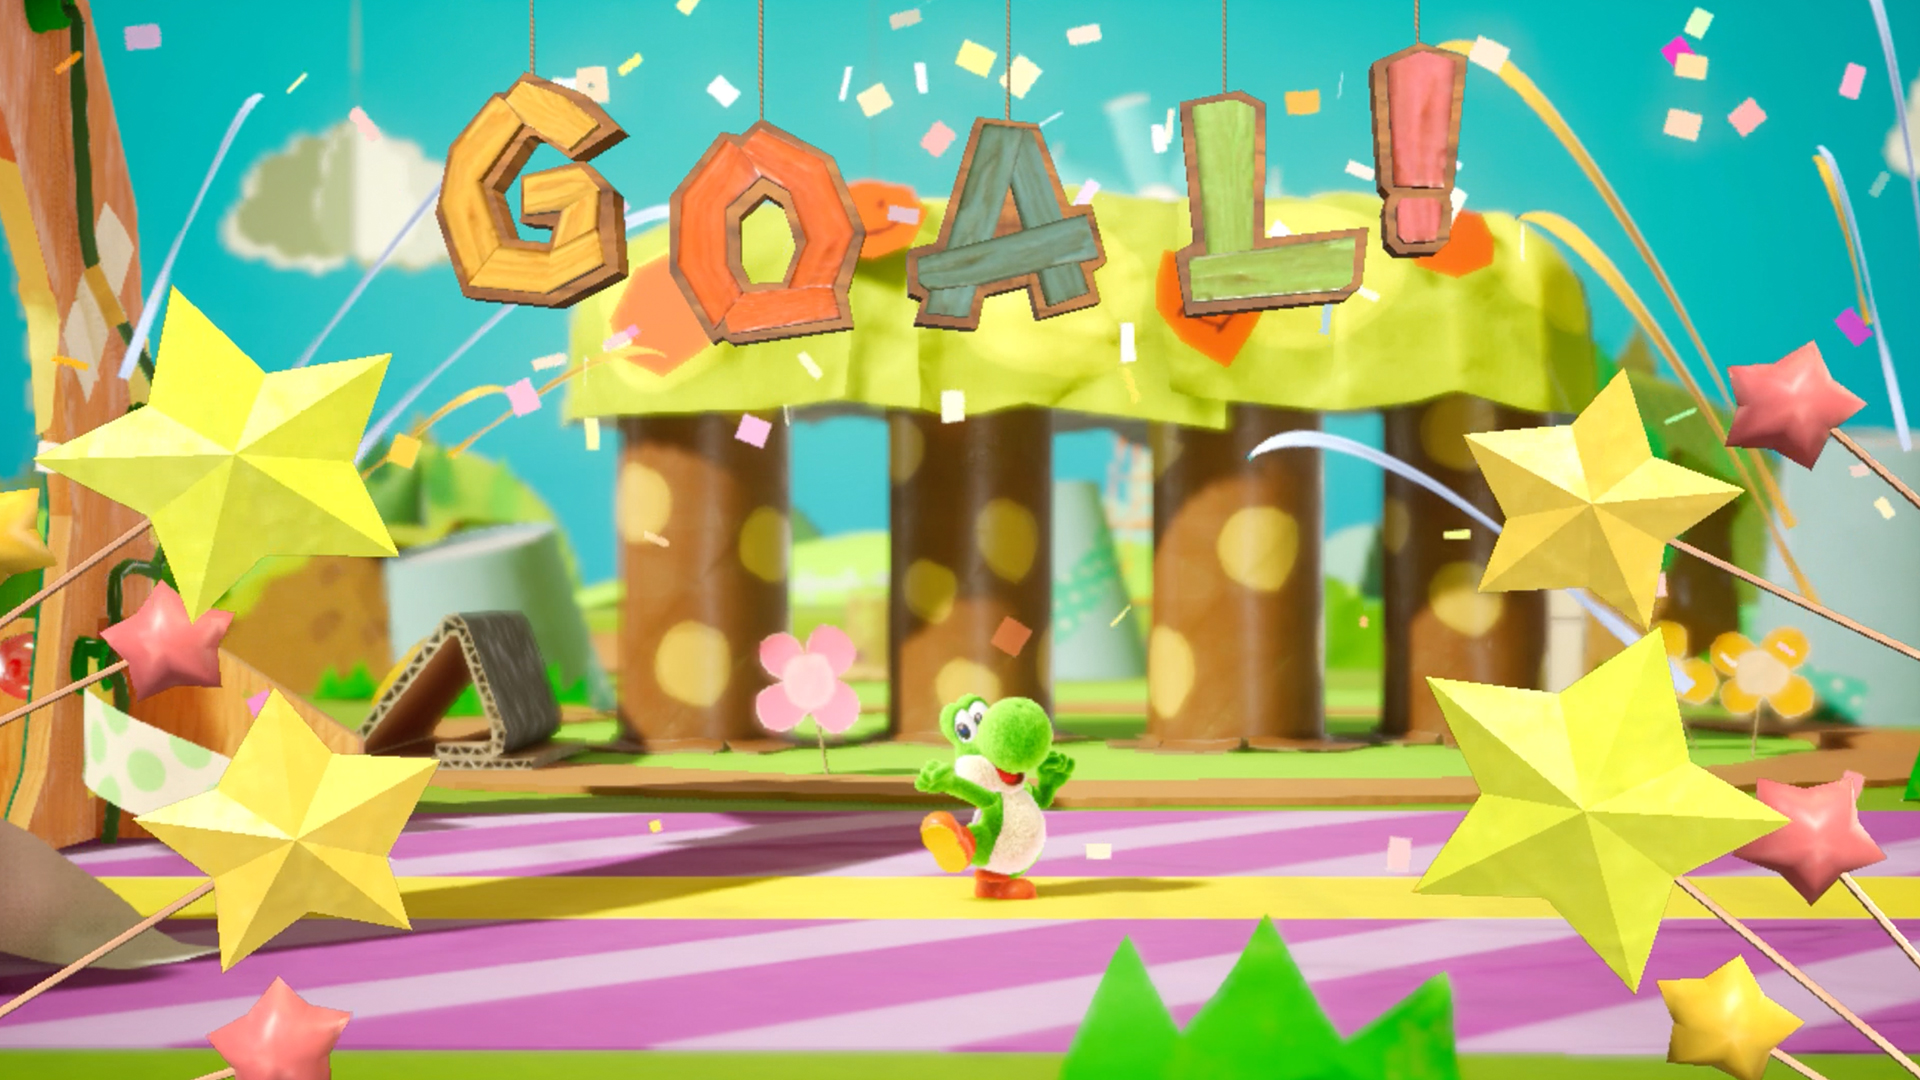 Yoshi's Crafted World demo is out now, and will give you one level